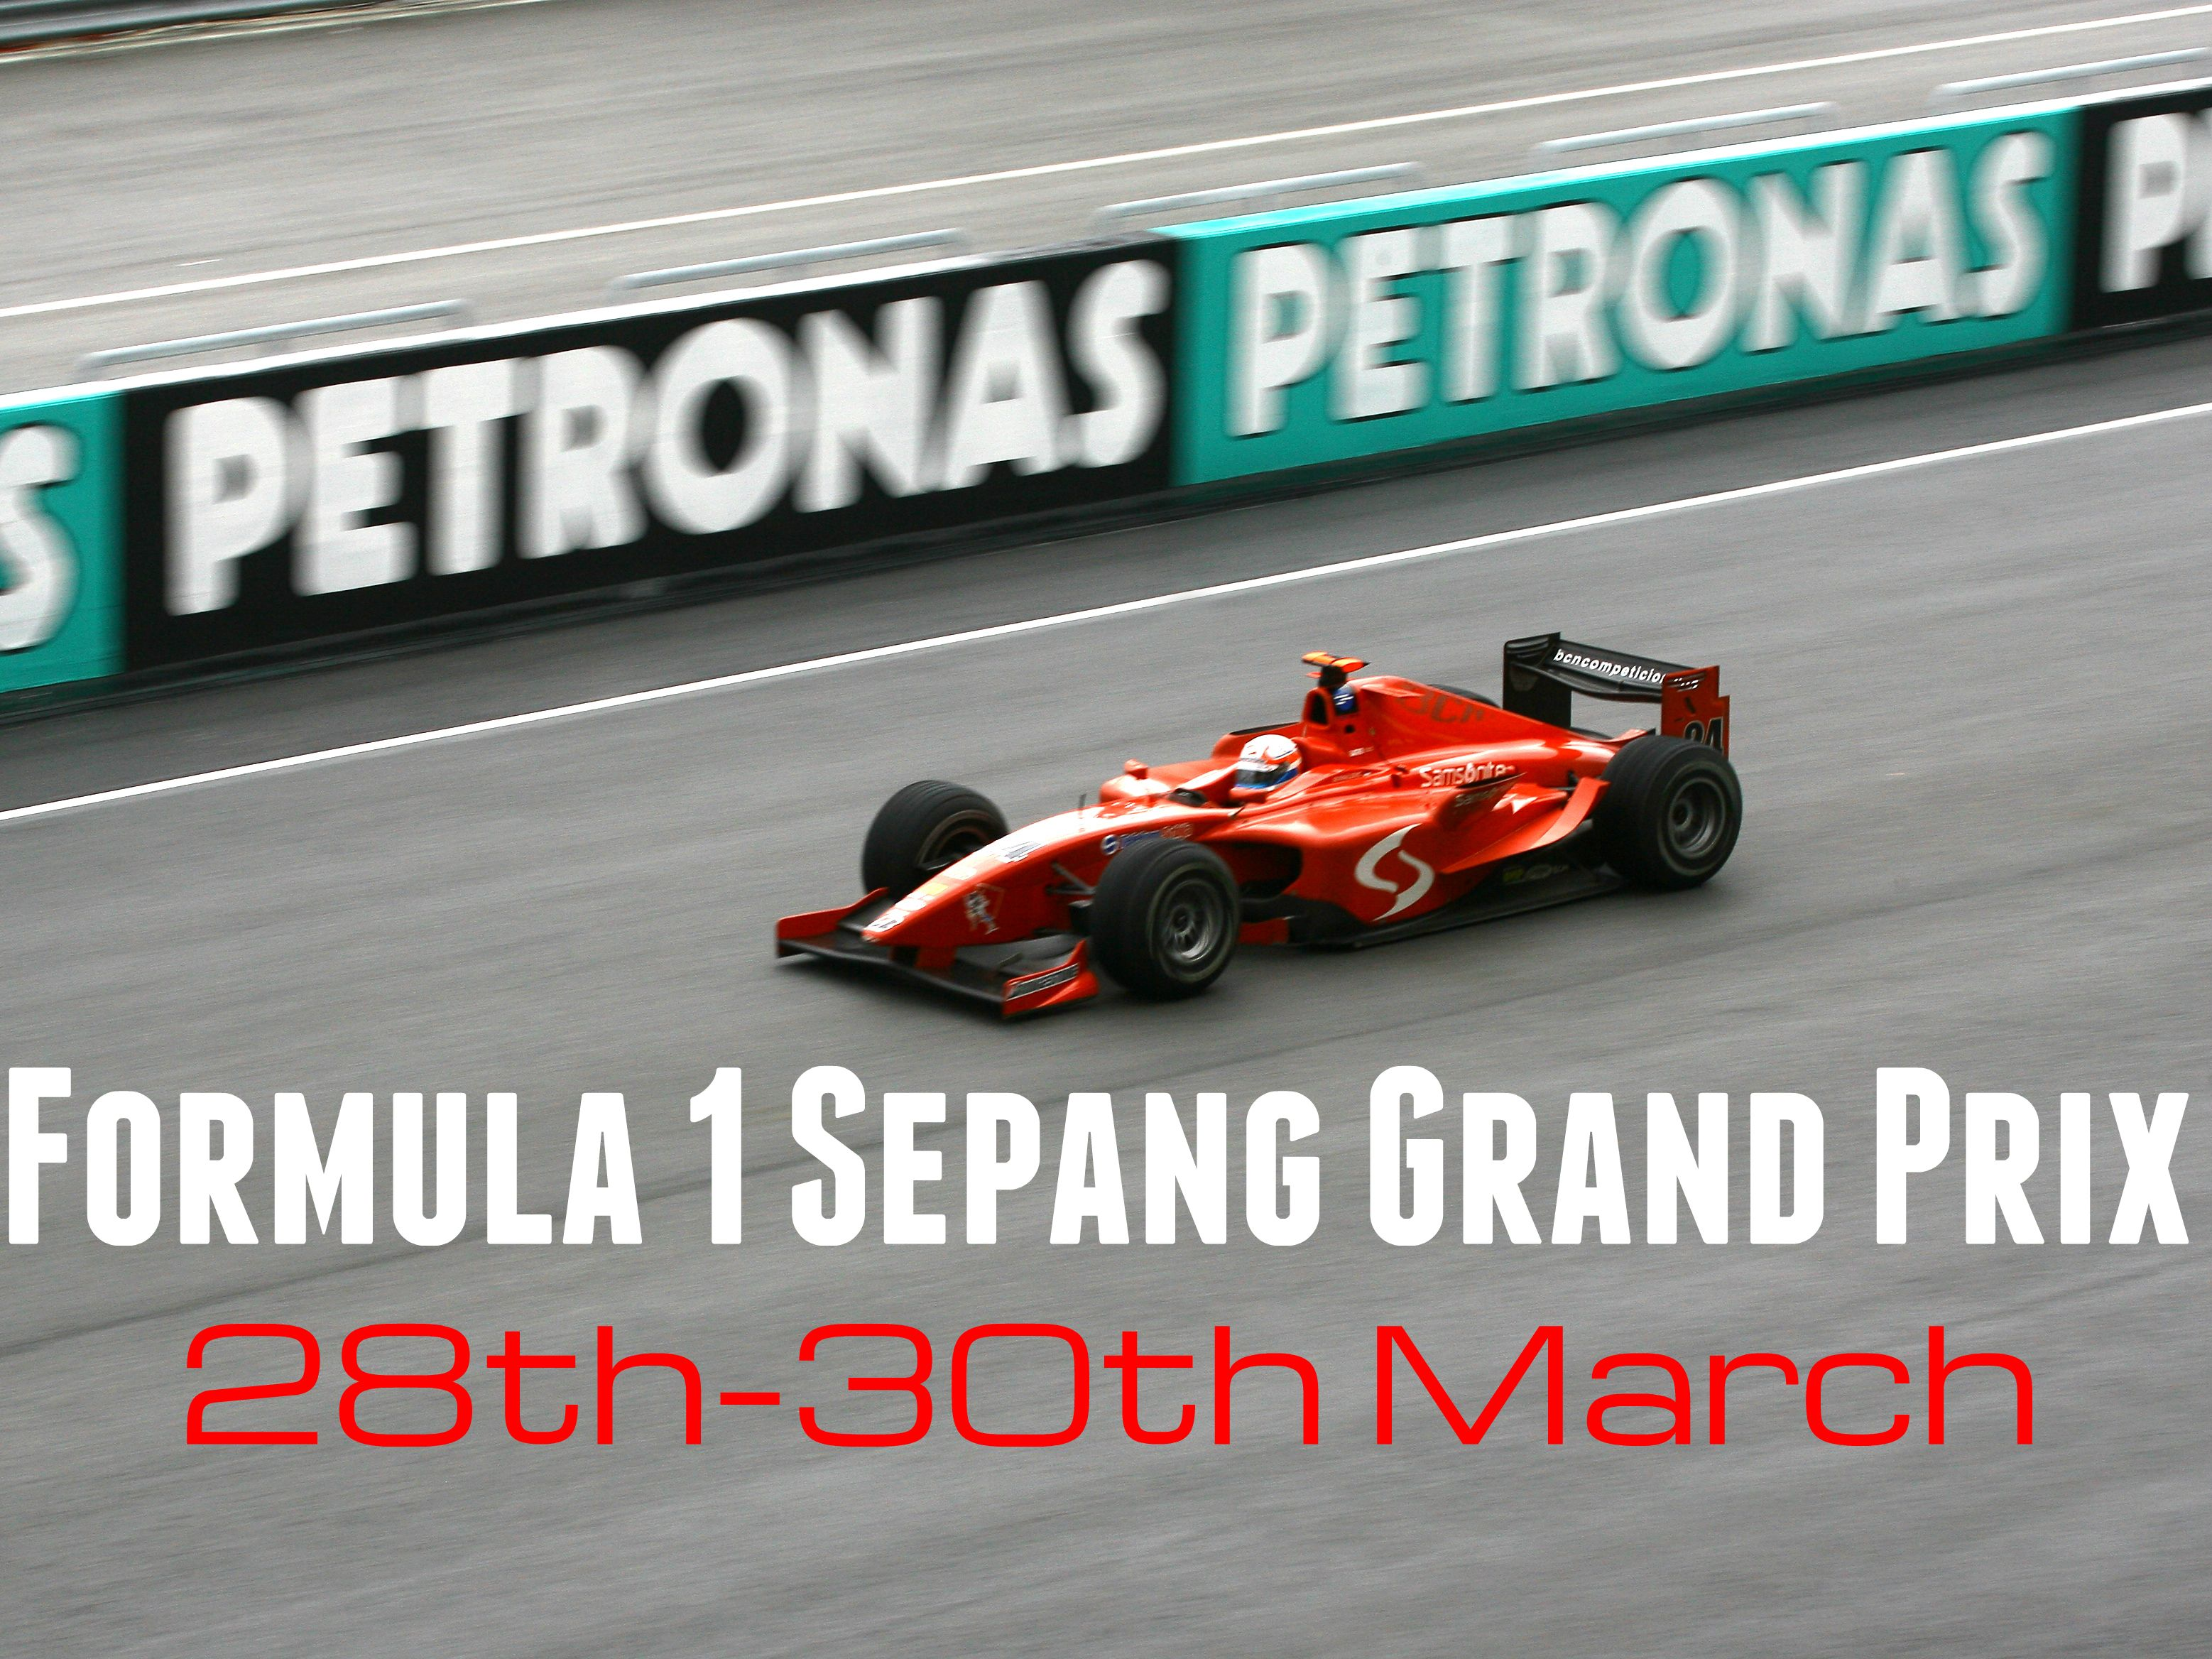 The Formula 1 Sepang, Malaysia, Grand Prix is up next, running from the 28th-30th March at Sepang International Circuit, Selangor. The extreme weather conditions of Malaysia are sure to make this one of the most exciting events of the year – if you're a fan of adrenaline pumping action then this is for you. You can book this through our sister company Global Sports Travel (MD Allan Lamb).  Contact Global Sports Travel on 020 7843 3522.